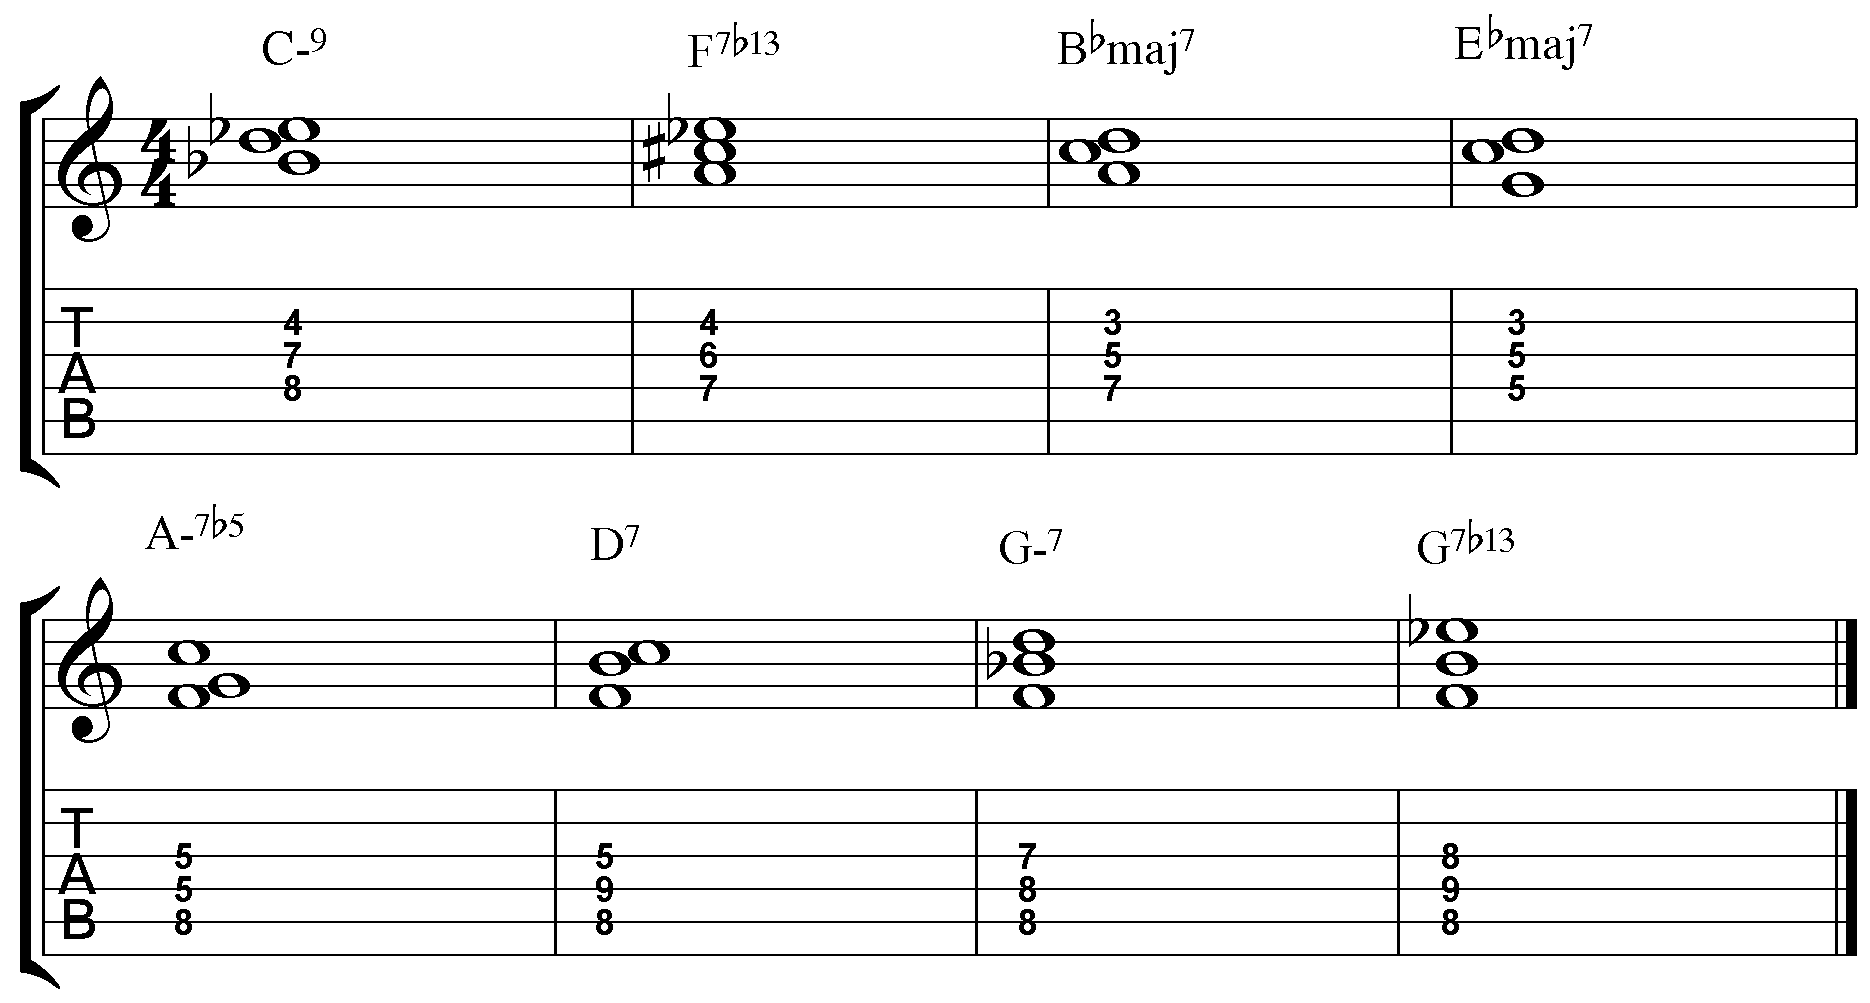 3 Autumn Leaves Chord Progression Studies - Jamie Holroyd